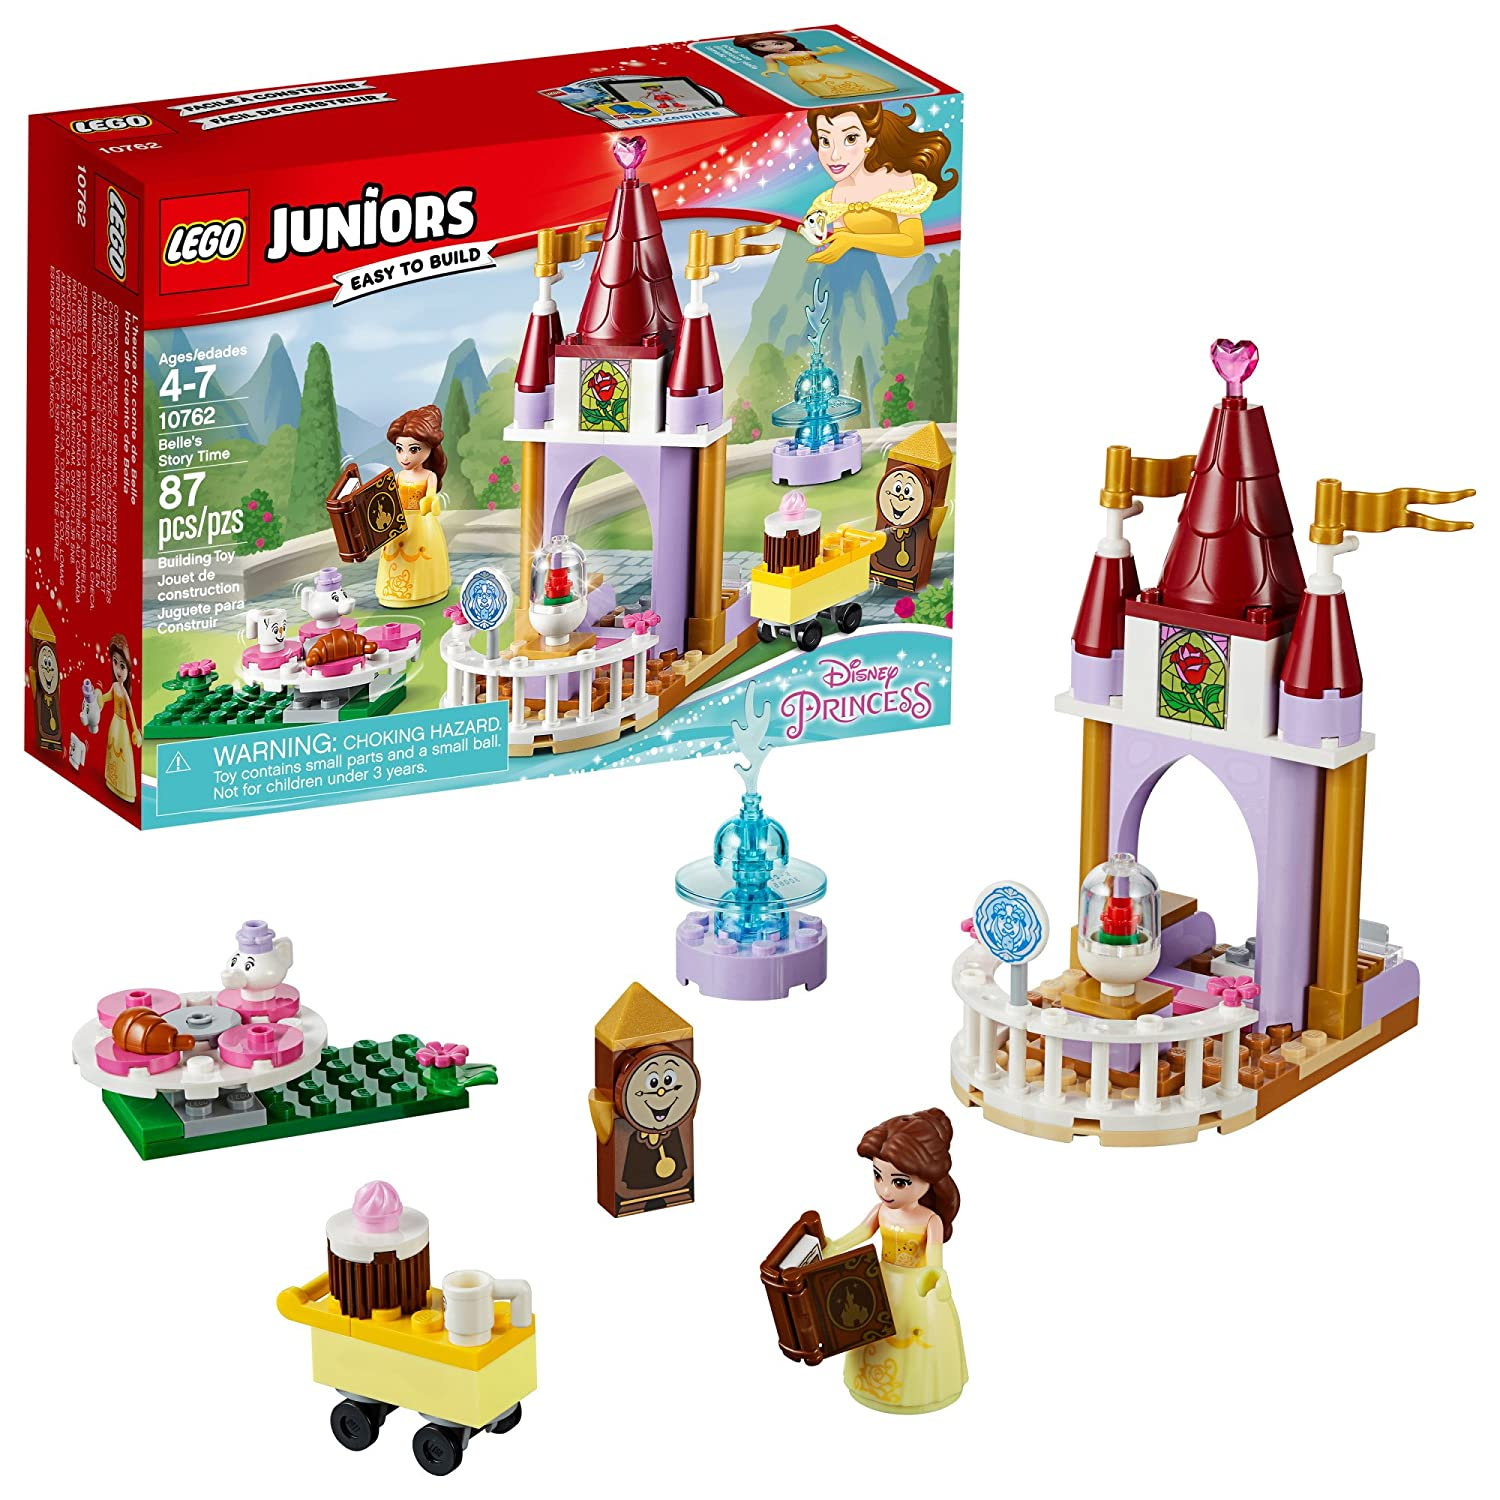 LEGO Juniors Belle' s Story Time 10762 Building Kit (87 Piece) 6213864